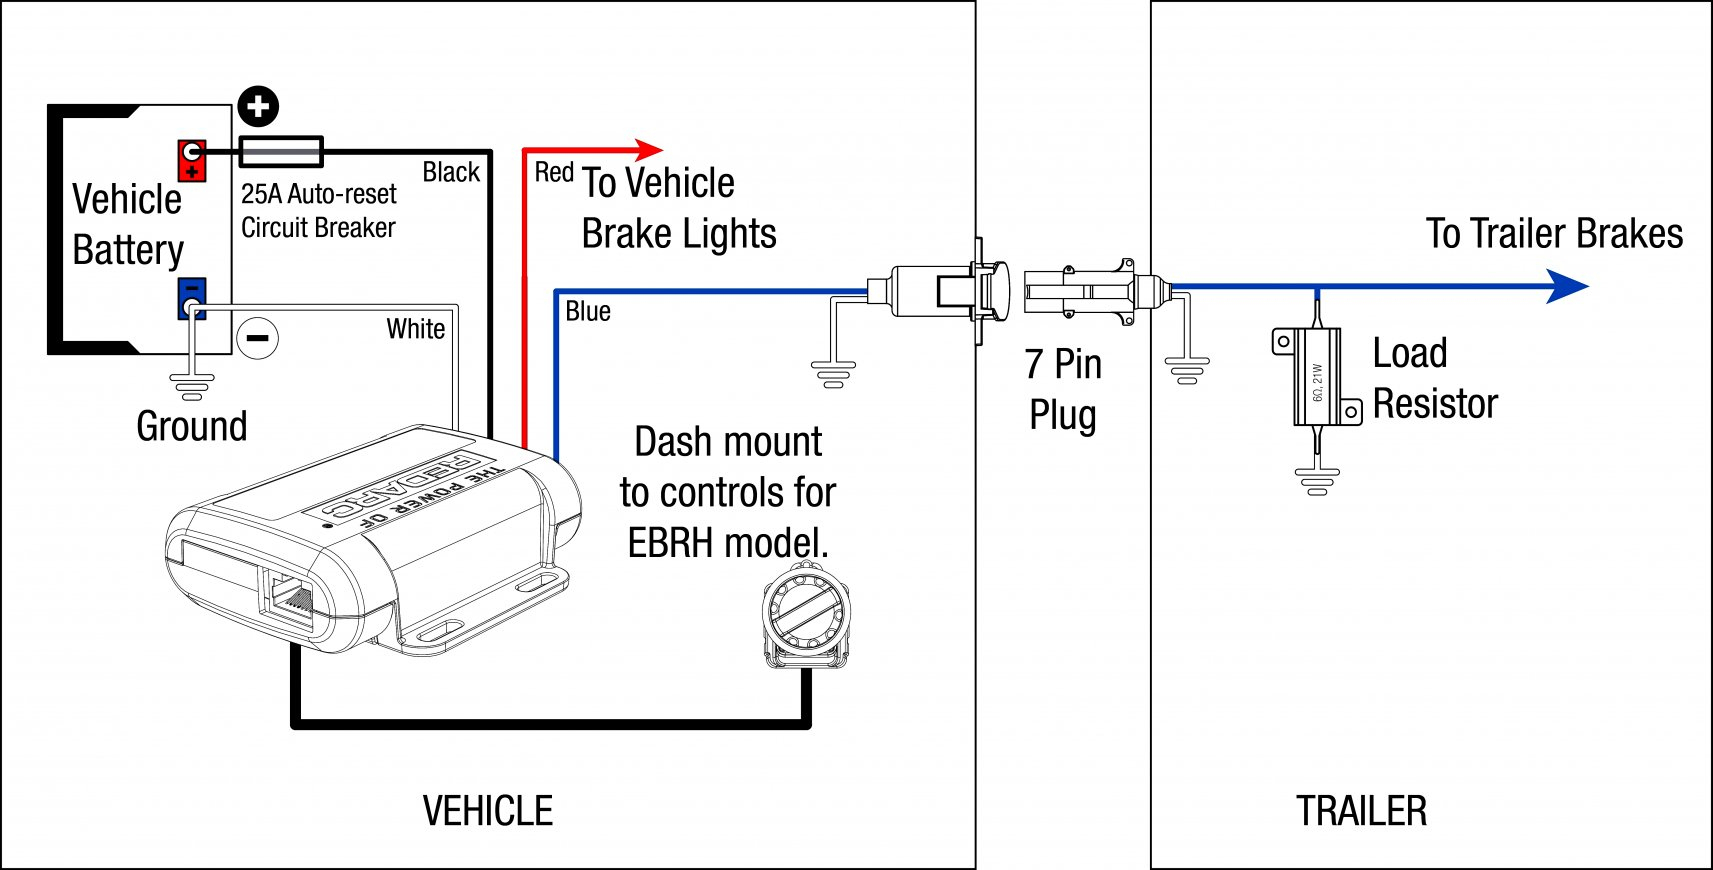 Elegant Of Impulse Trailer Brake Controller Wiring Diagram Hopkins - Car Trailer Wiring Diagram With Electric Brakes